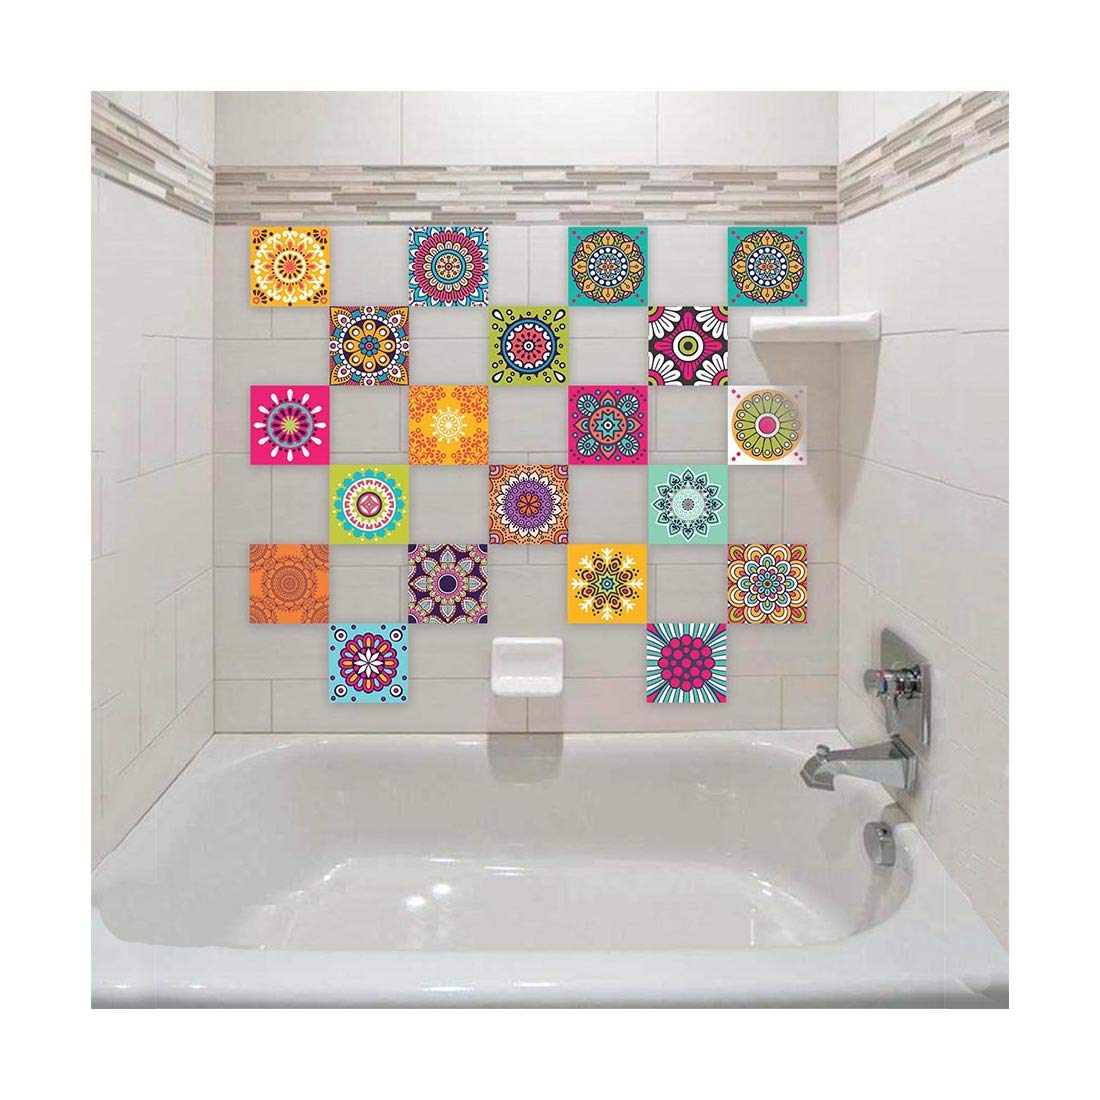 Buy 100yellow Self Adhesive Mosaic Bathroom Waterproof Wall Tiles Stickers Decal 15 X 15 Cm 20 Pieces Online At Low Prices In India Amazon In